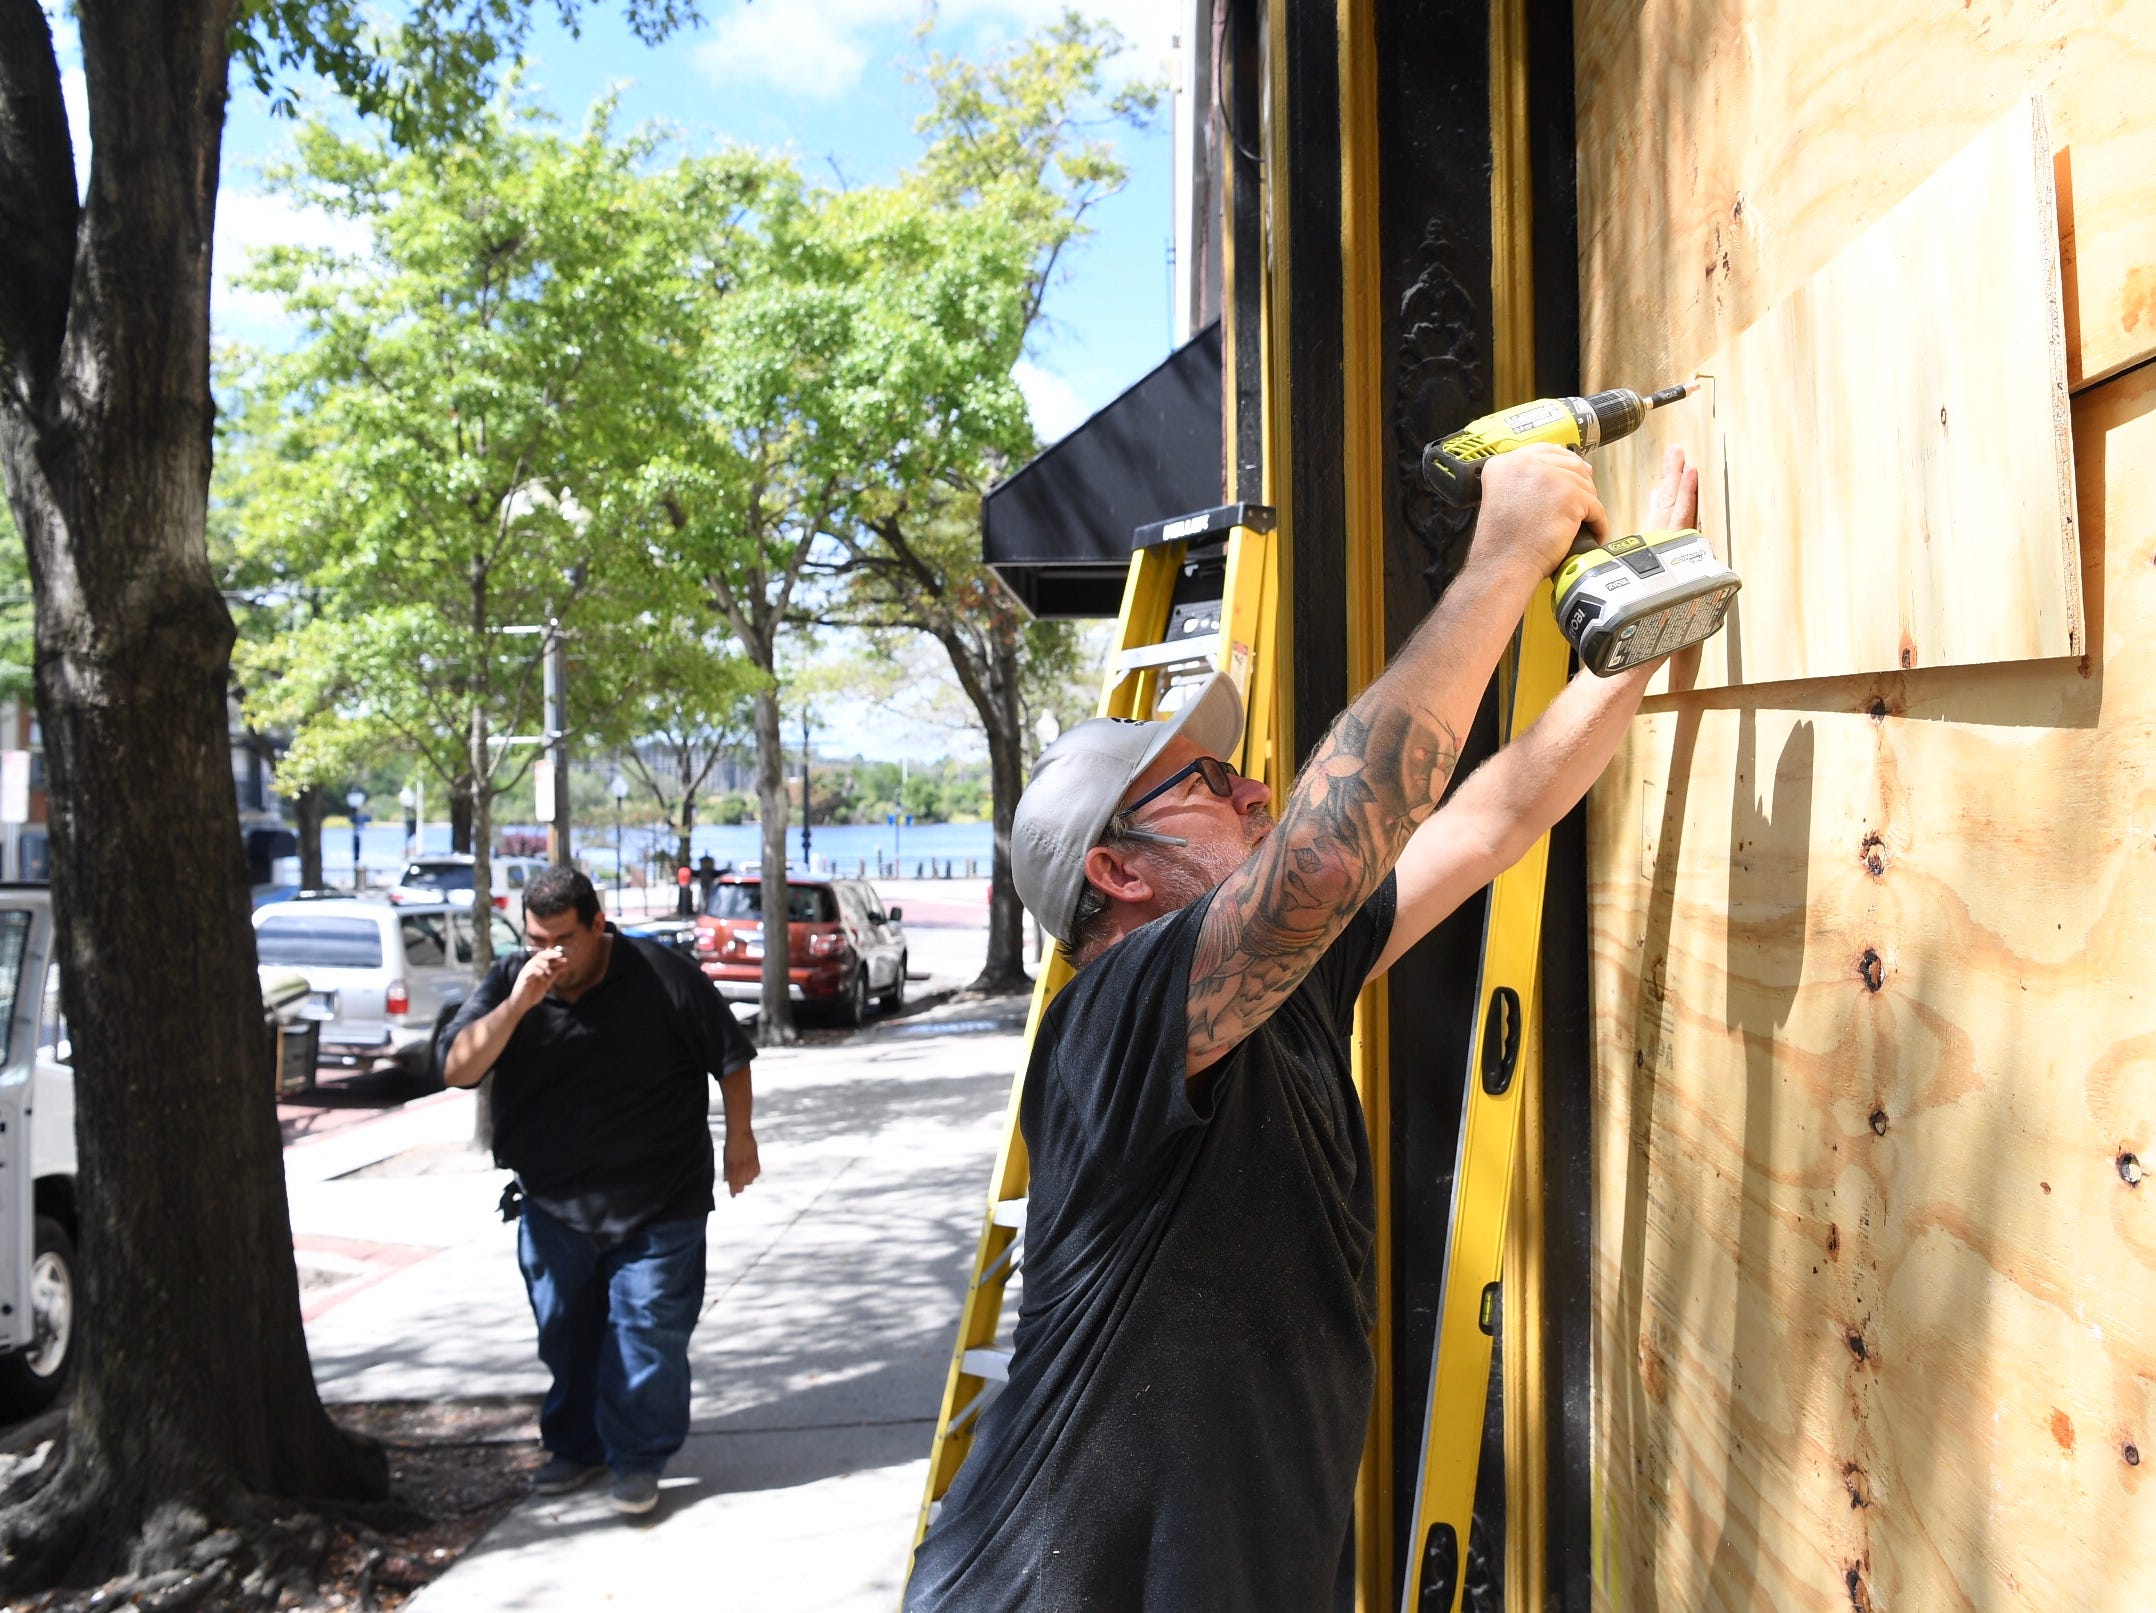 Shawn Booth, owner of The Liquid Room, puts boards on windows of his bar on Market Street in downtown Wilmington, N.C., on Wednesday, Sept. 12, 2018.